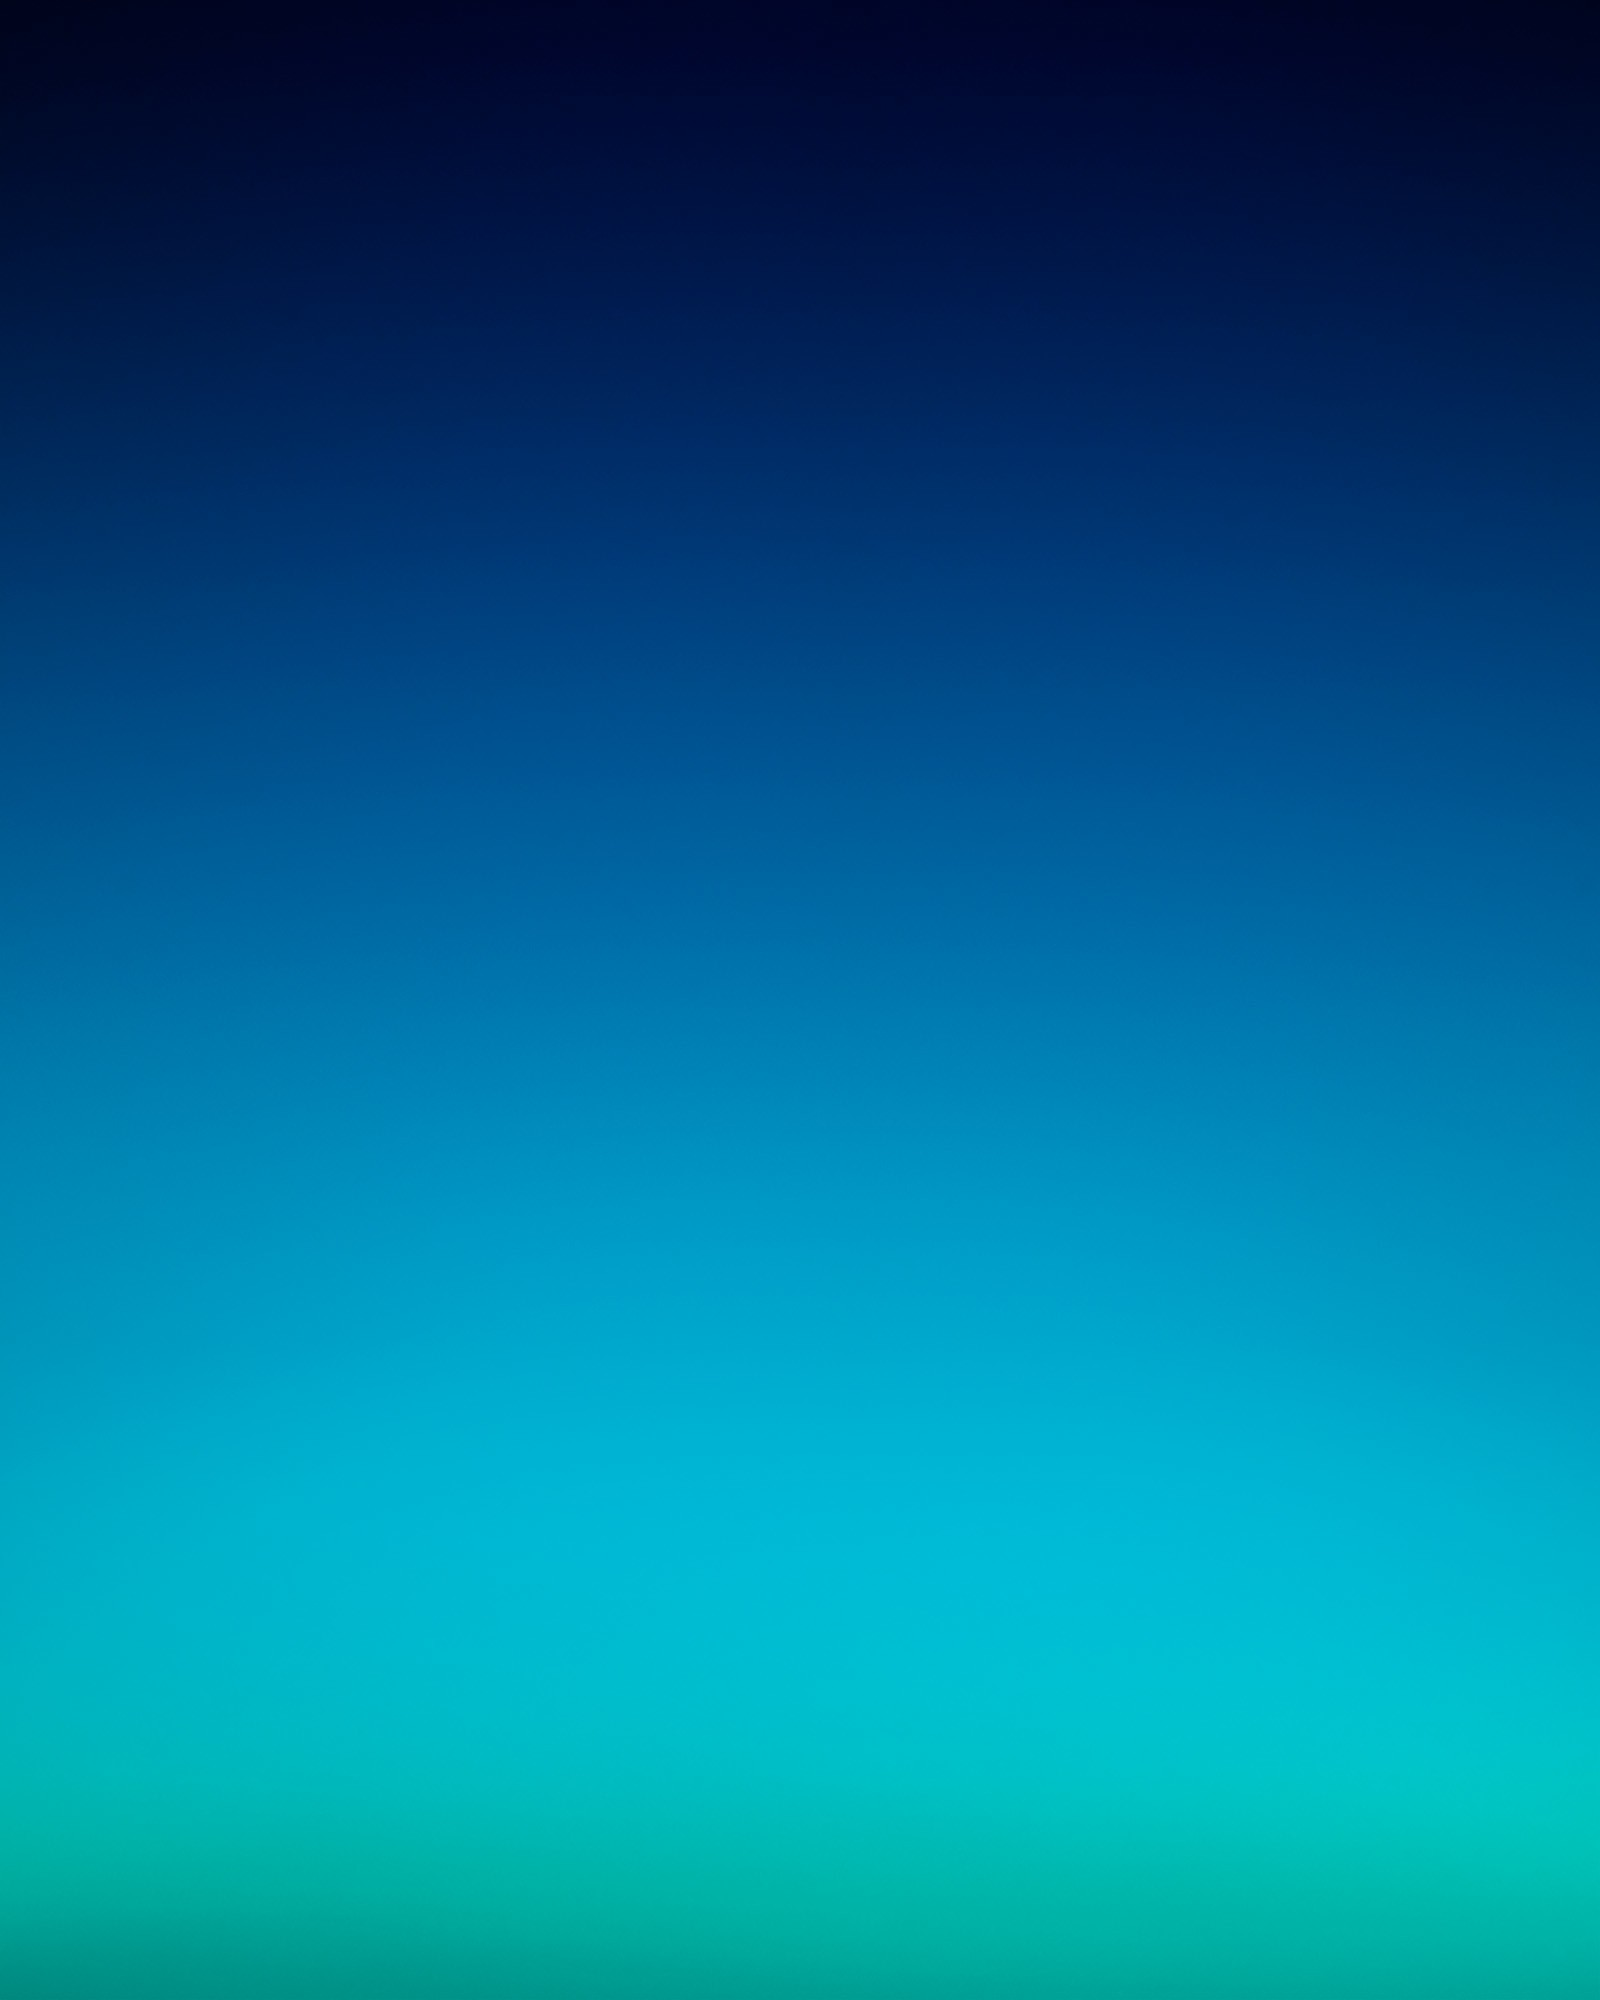 Cool 3d Ipad Wallpapers Blue Ombre Background 183 ① Download Free Cool Full Hd